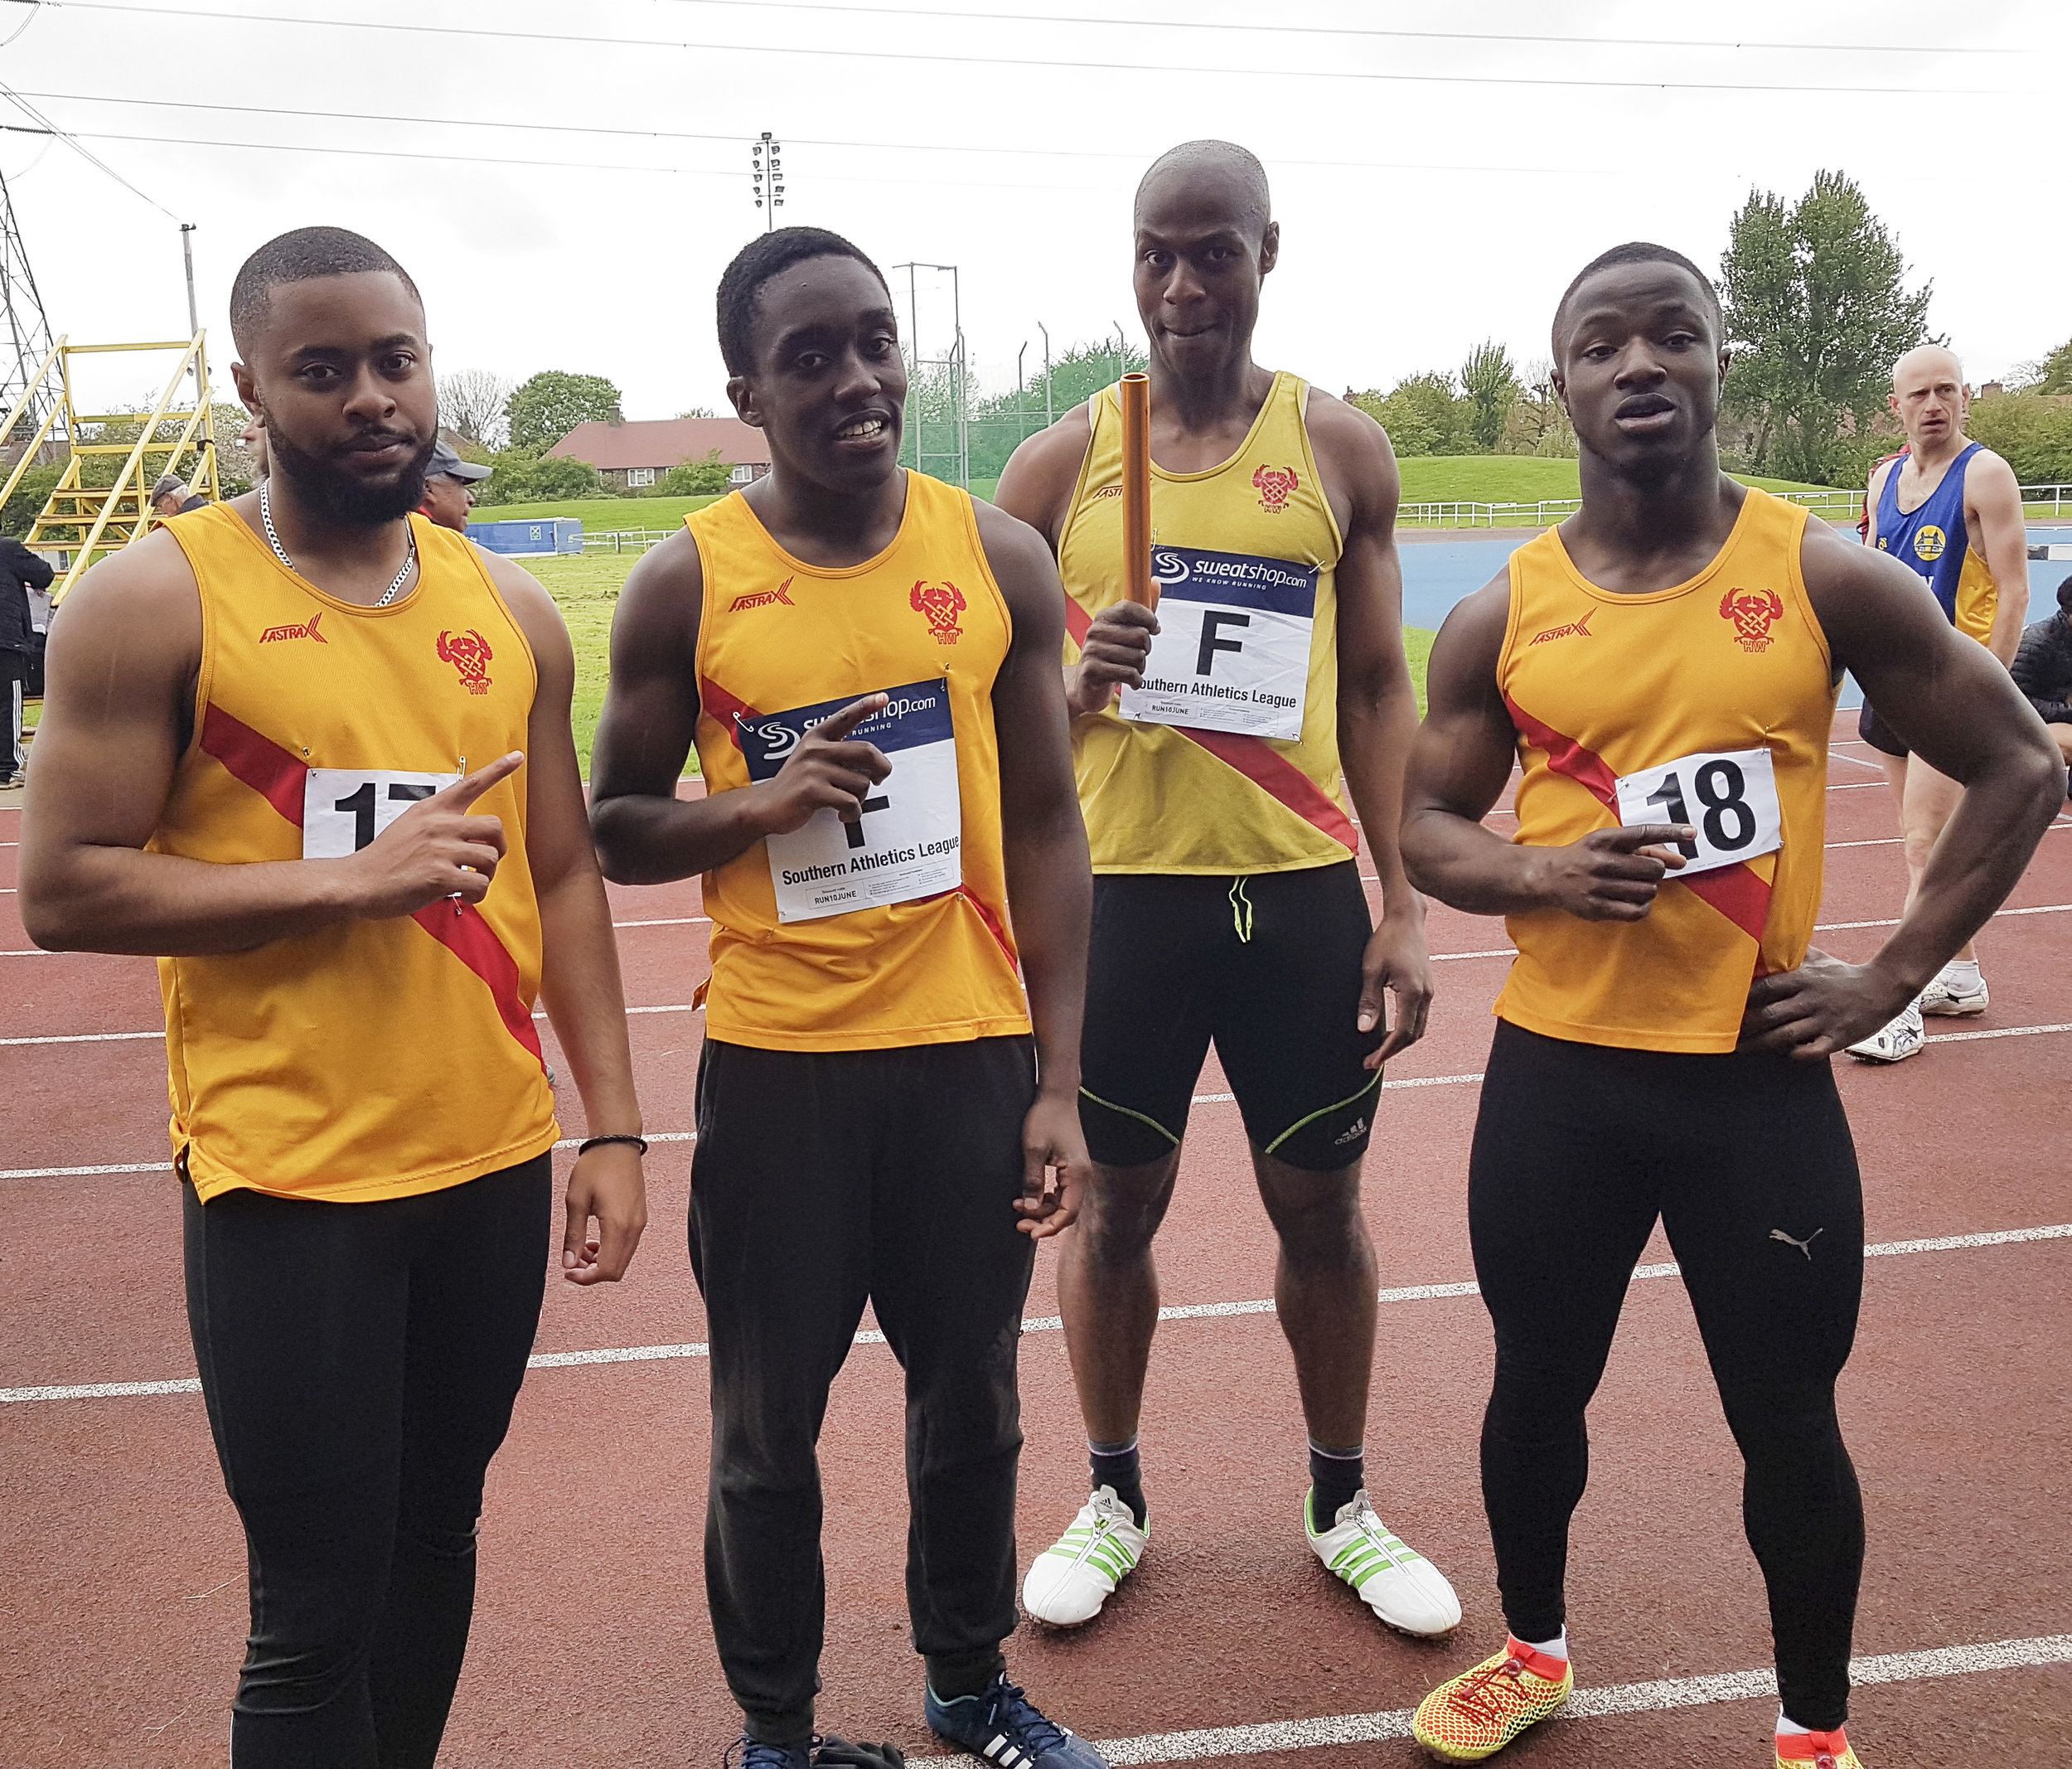 The winning 4x400 metres relay team at Saturday's SAL match at Carshalton